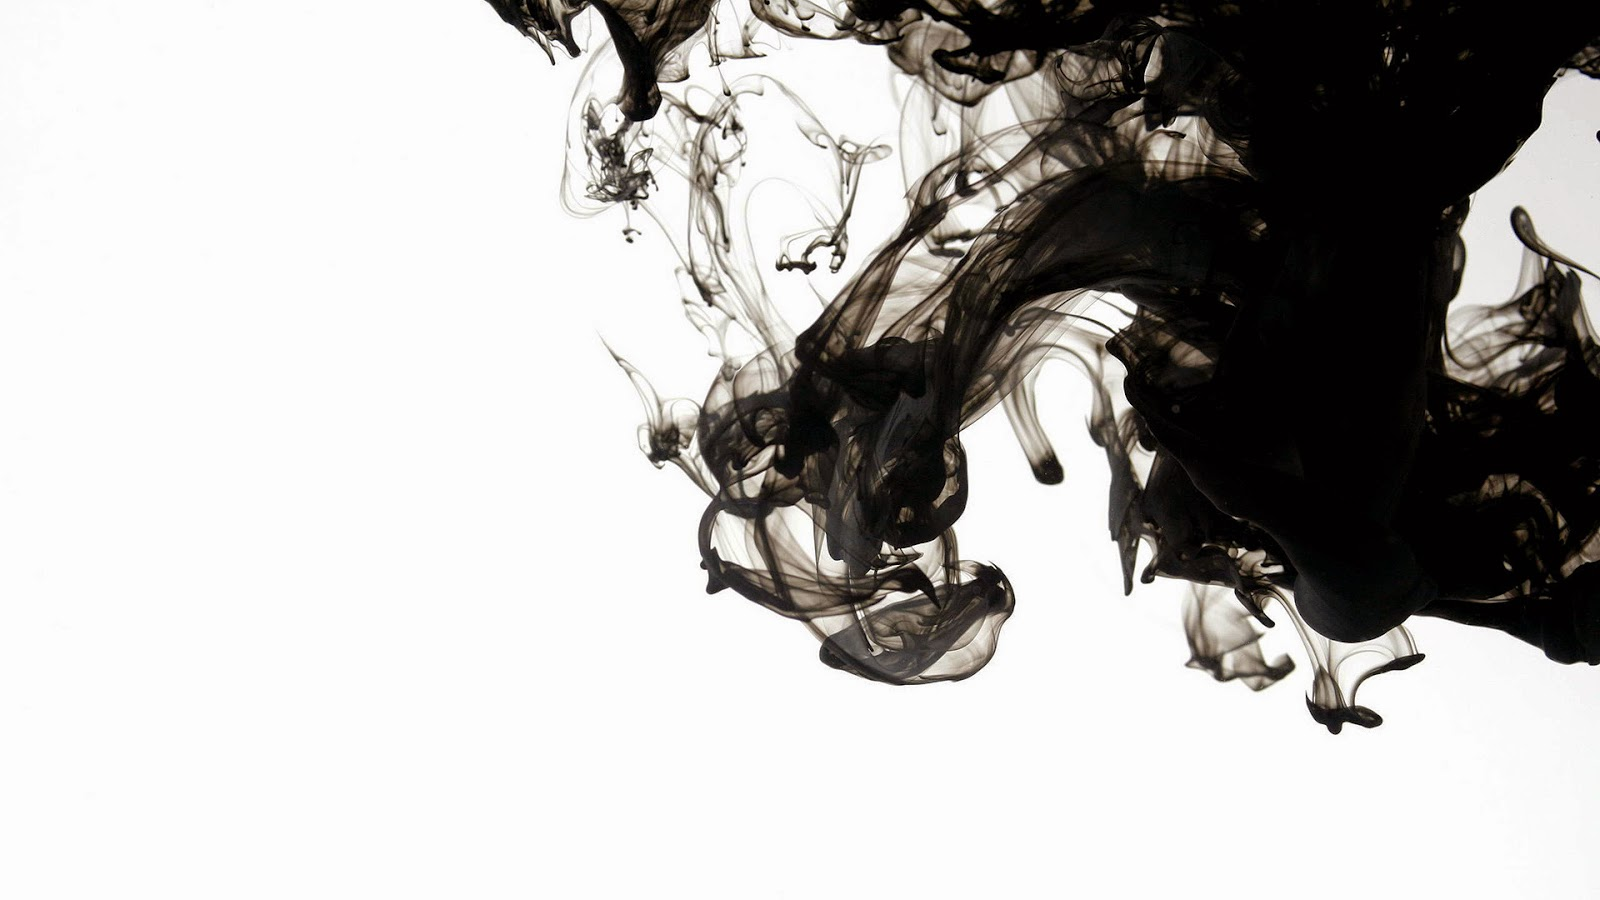 Smoke Hd Wallpapers Hd Wallpapers N Black And White